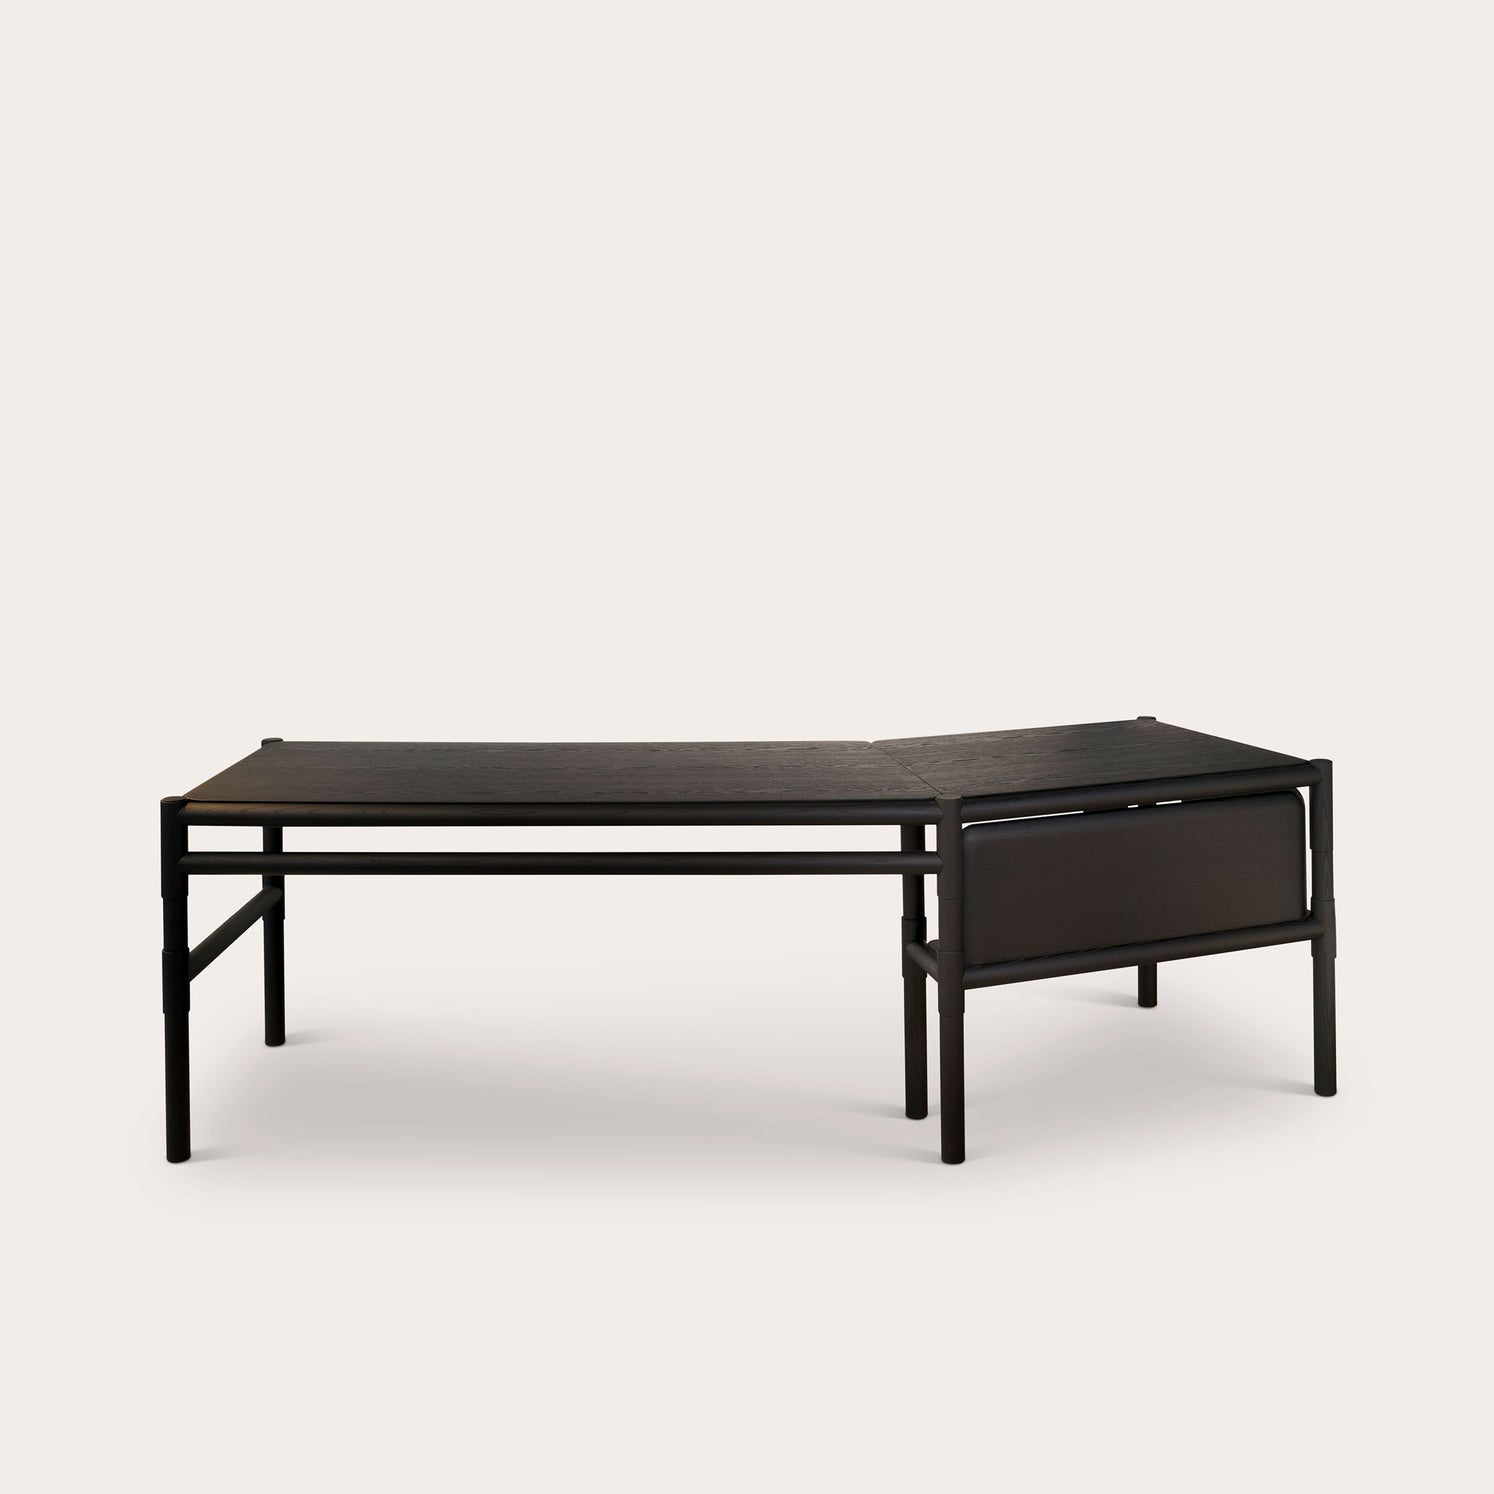 BILBAO Desk Tables Bruno Moinard Designer Furniture Sku: 773-230-10078